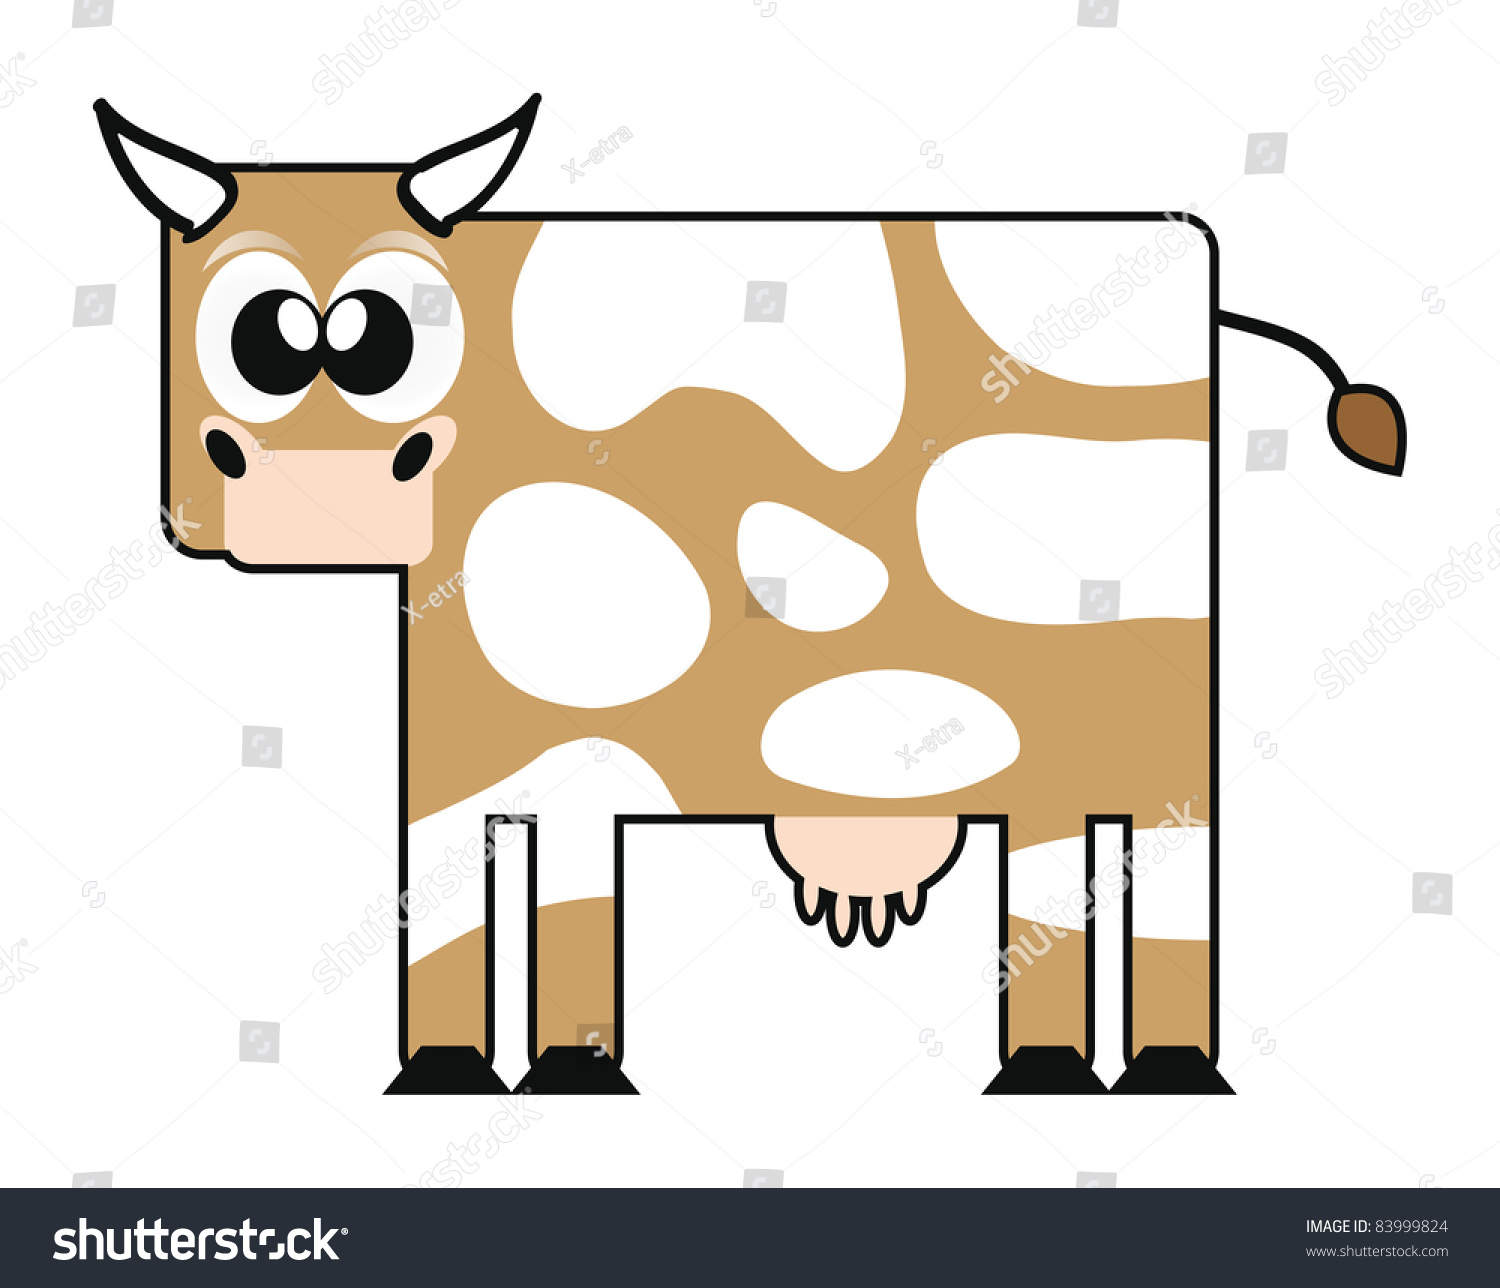 Isolation Carton Illustration Happy Cartoon Cow Isolation Over Stock Vector